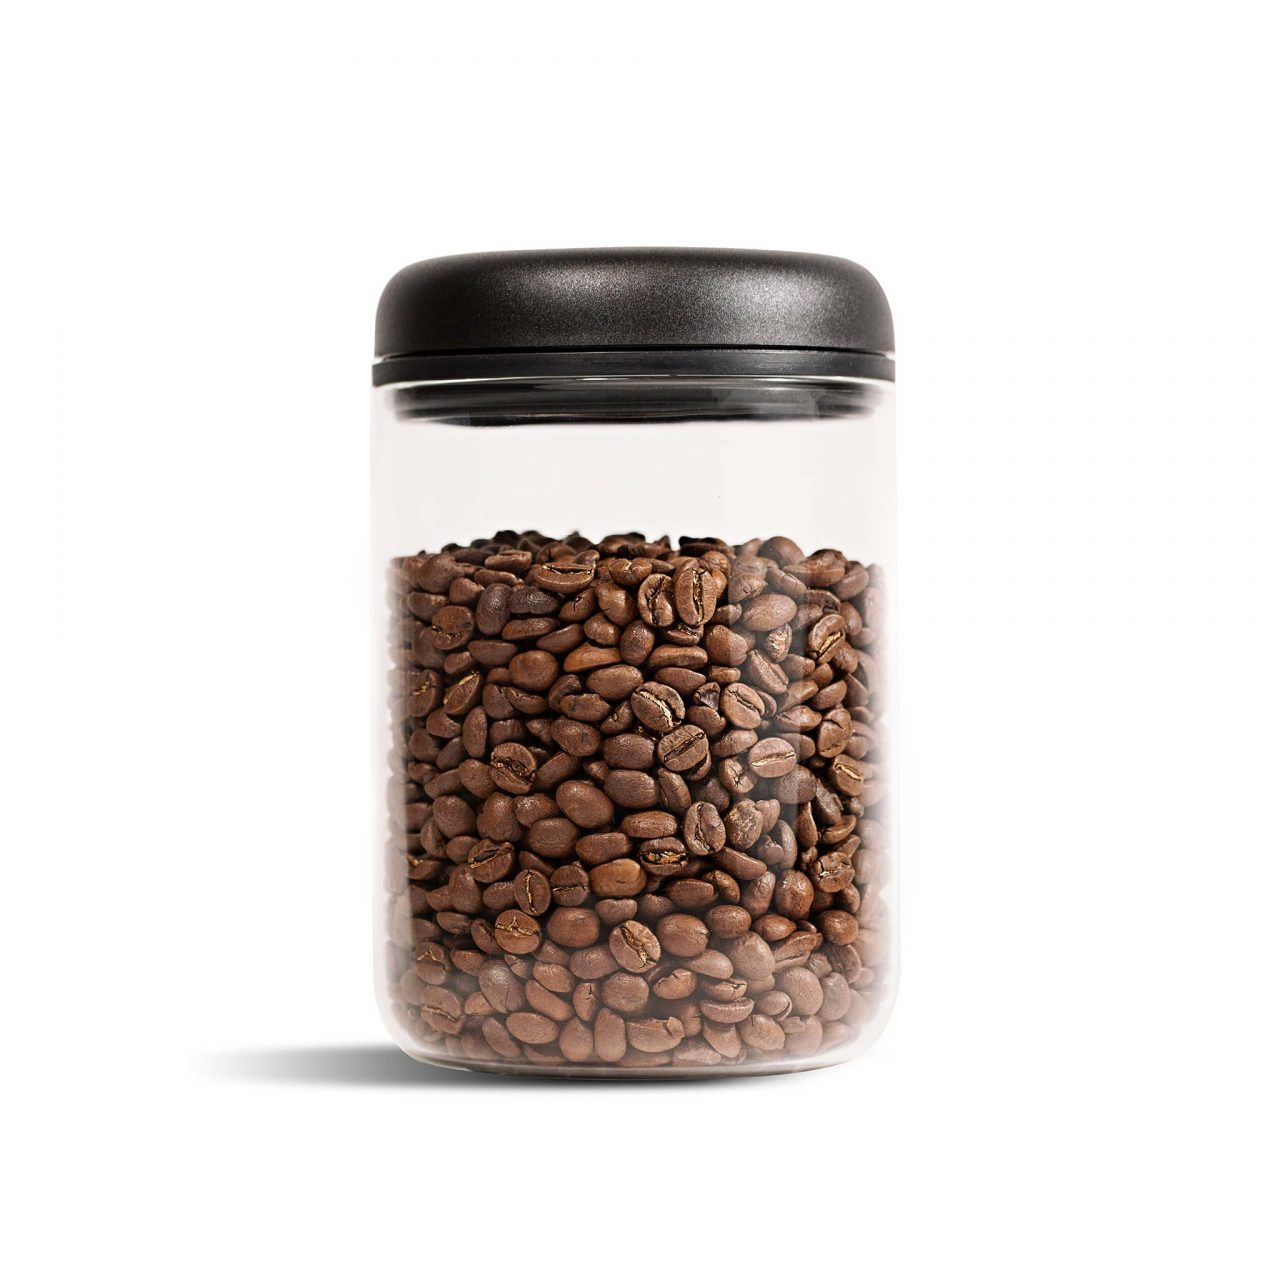 Commercial Coffee Photography